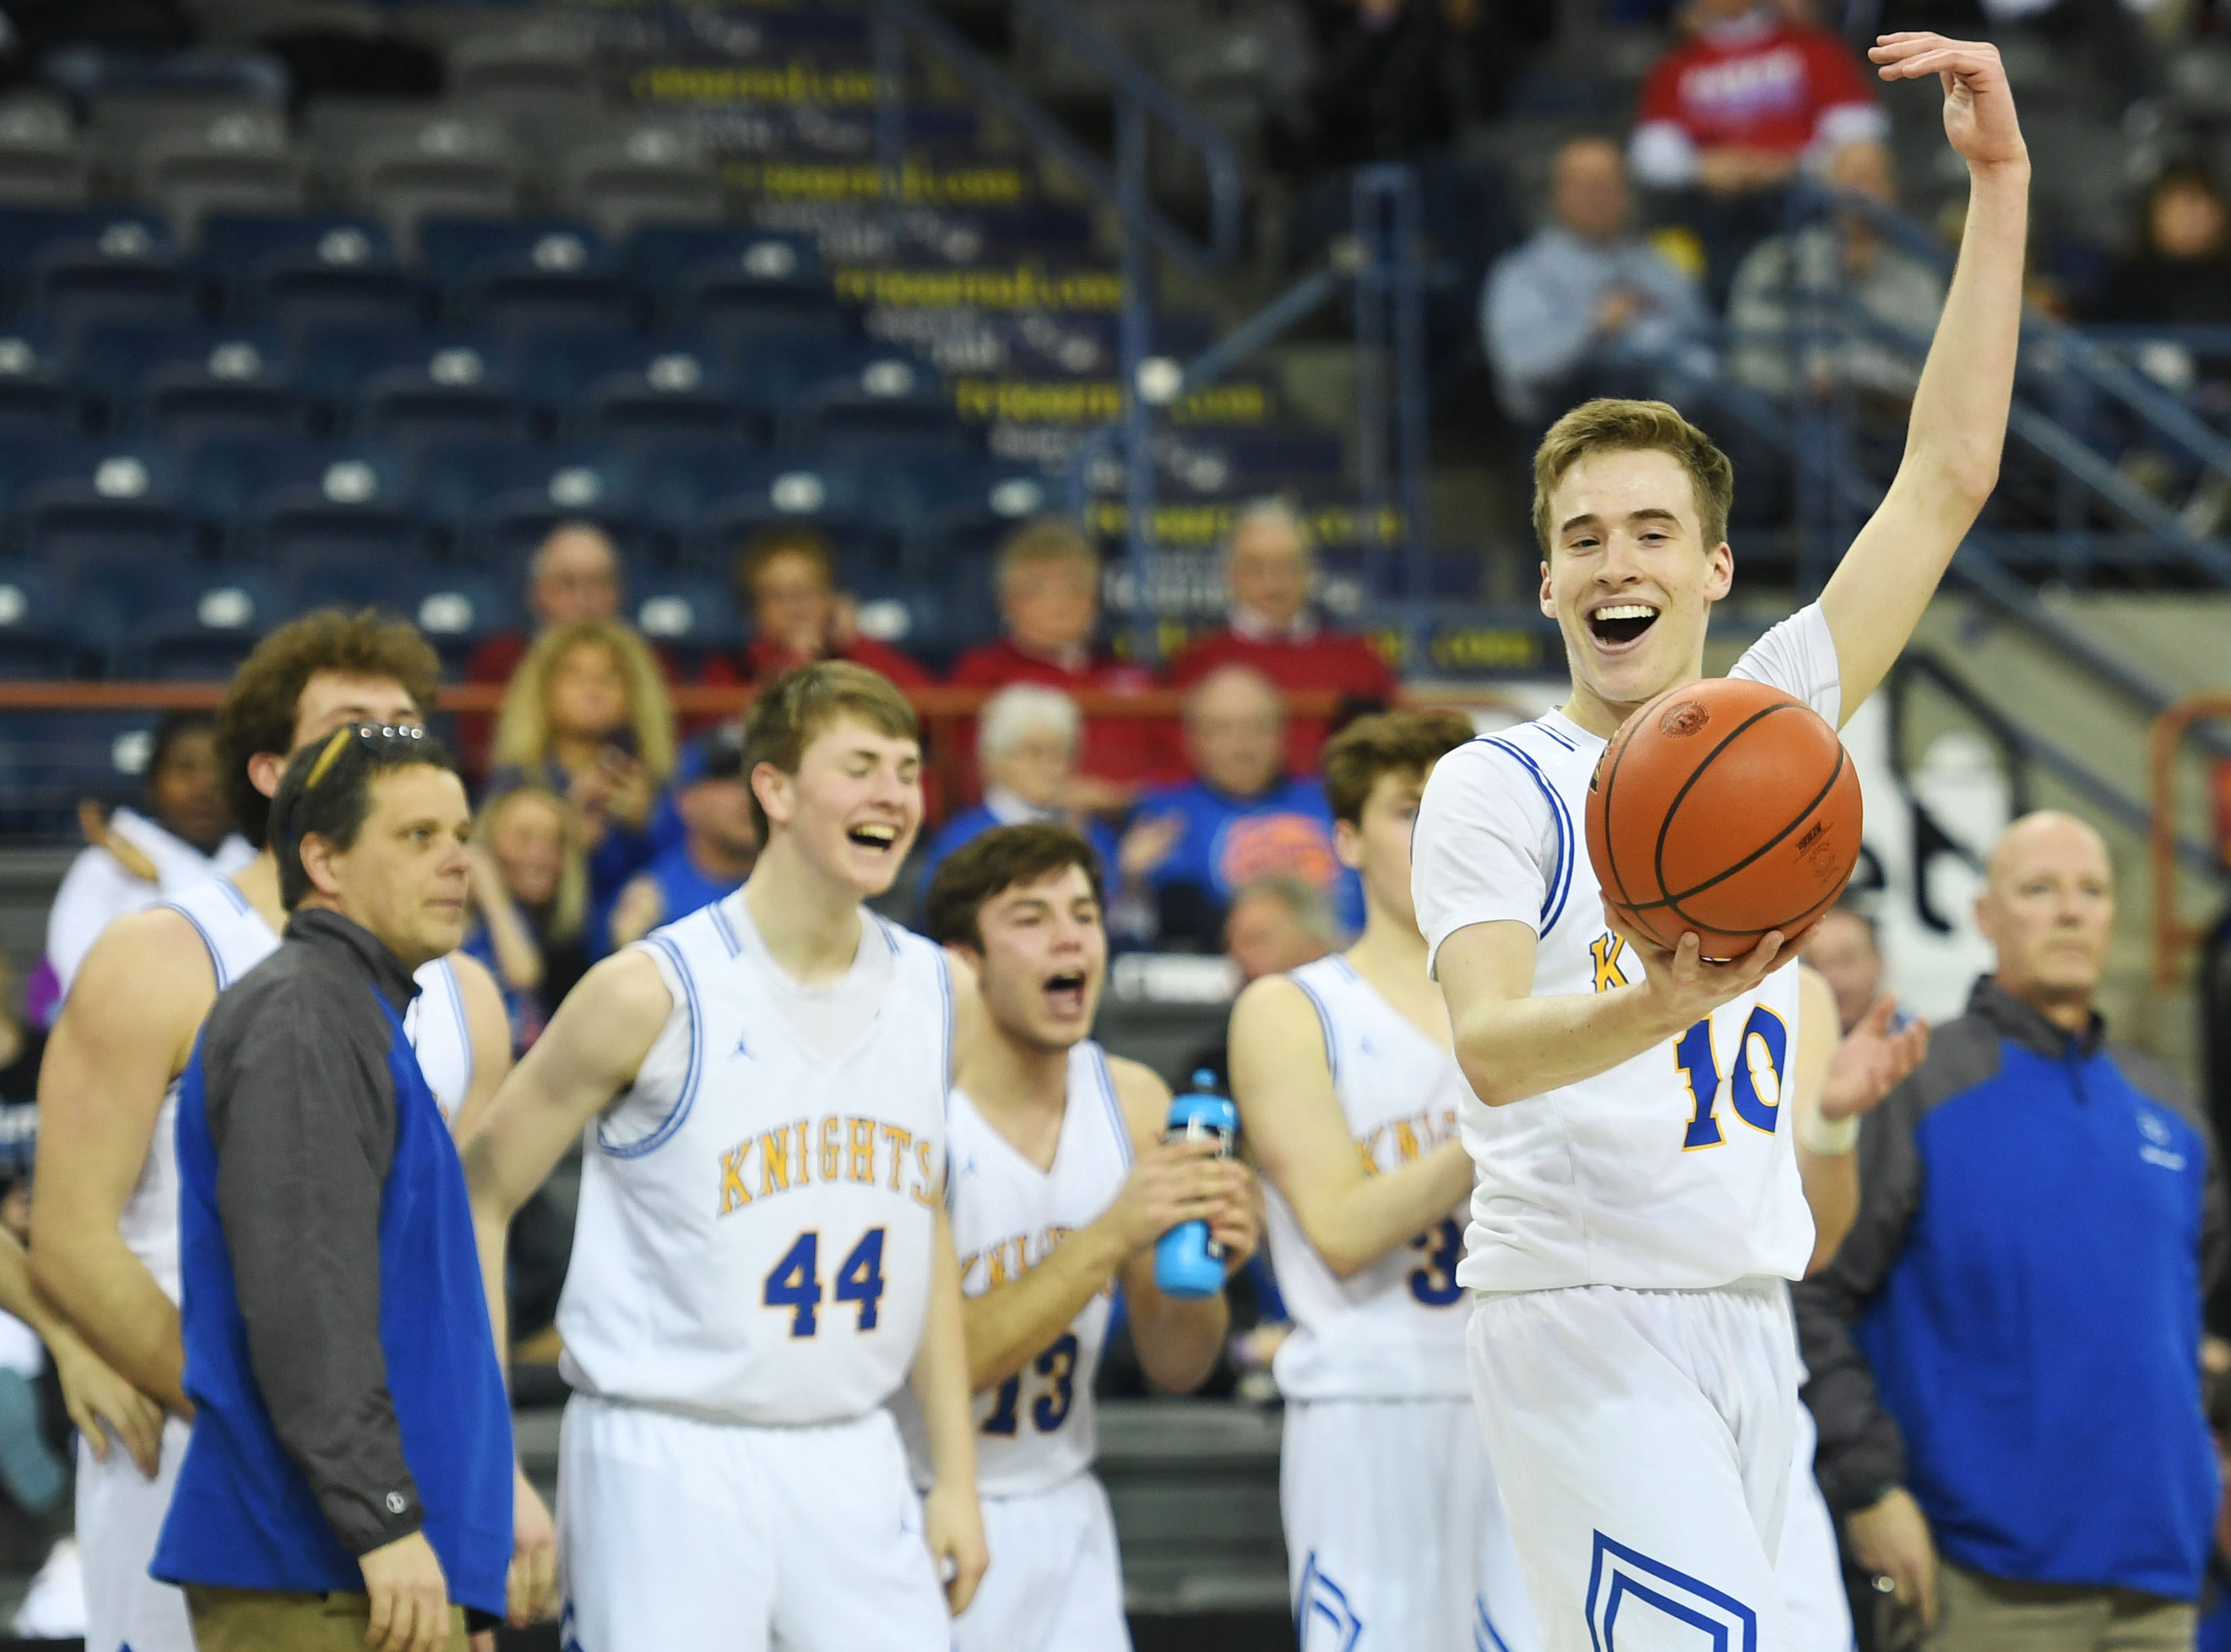 O'Gorman's Jack Cartwright motions to the crowd in the last seconds of the game against Roosevelt in the Class AA quarterfinals Thursday, March 14, in Rapid City.